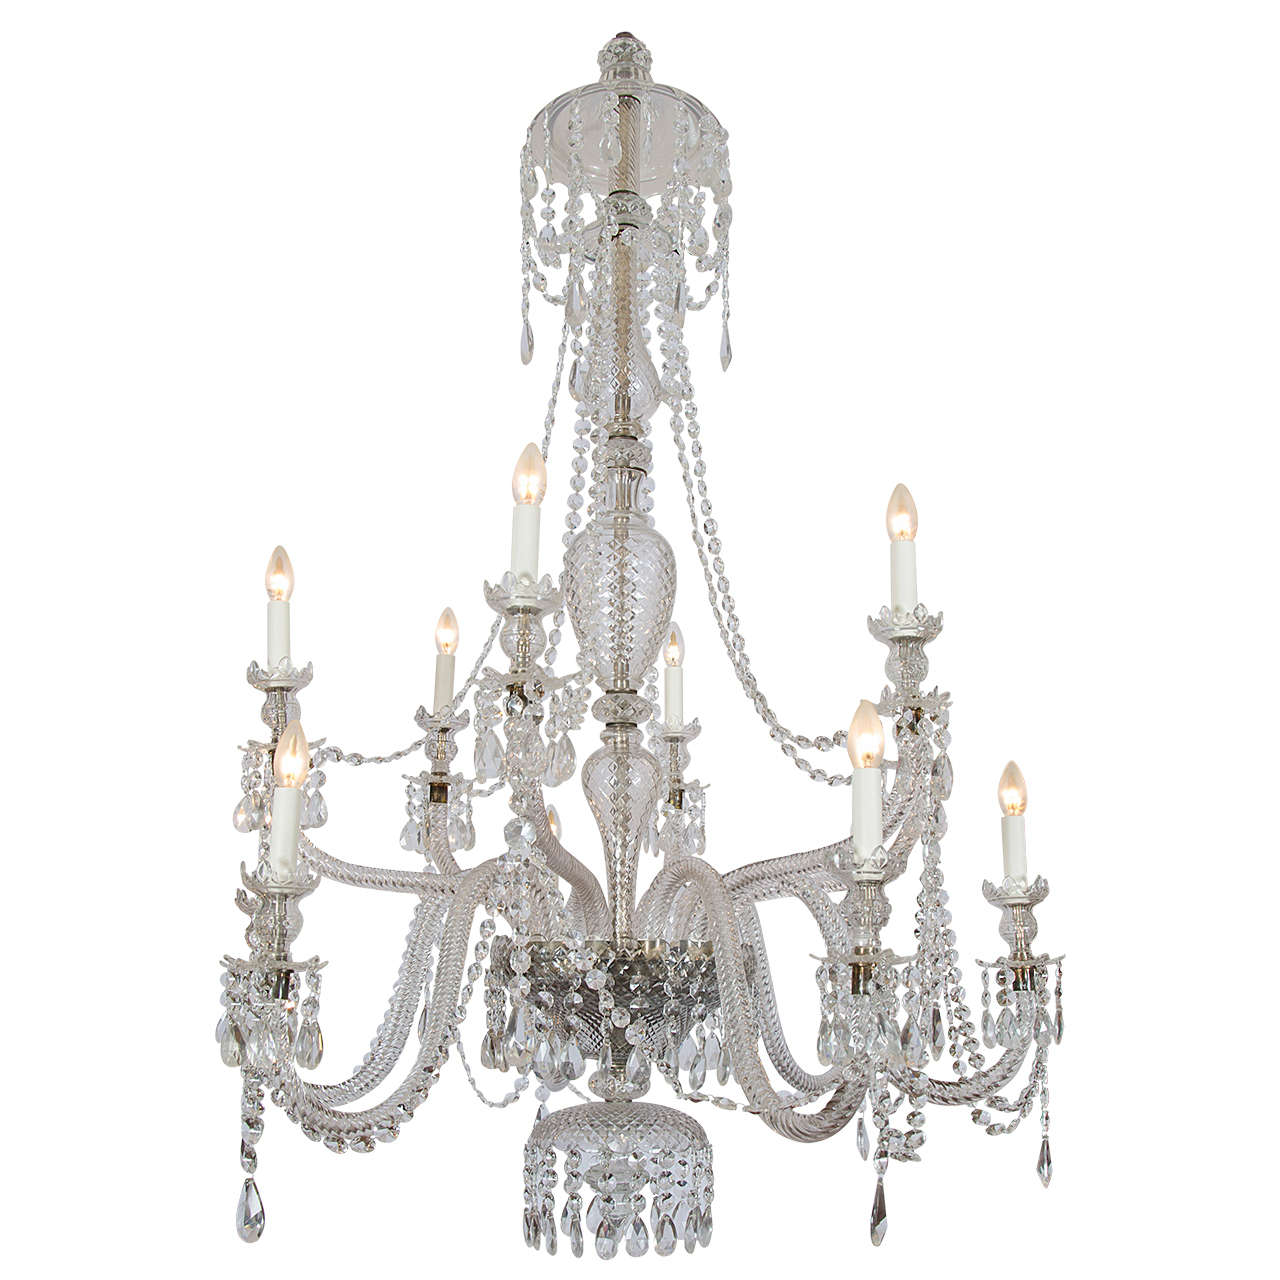 Double Tiered Crystal and Glass Chandelier in the Georgian Style